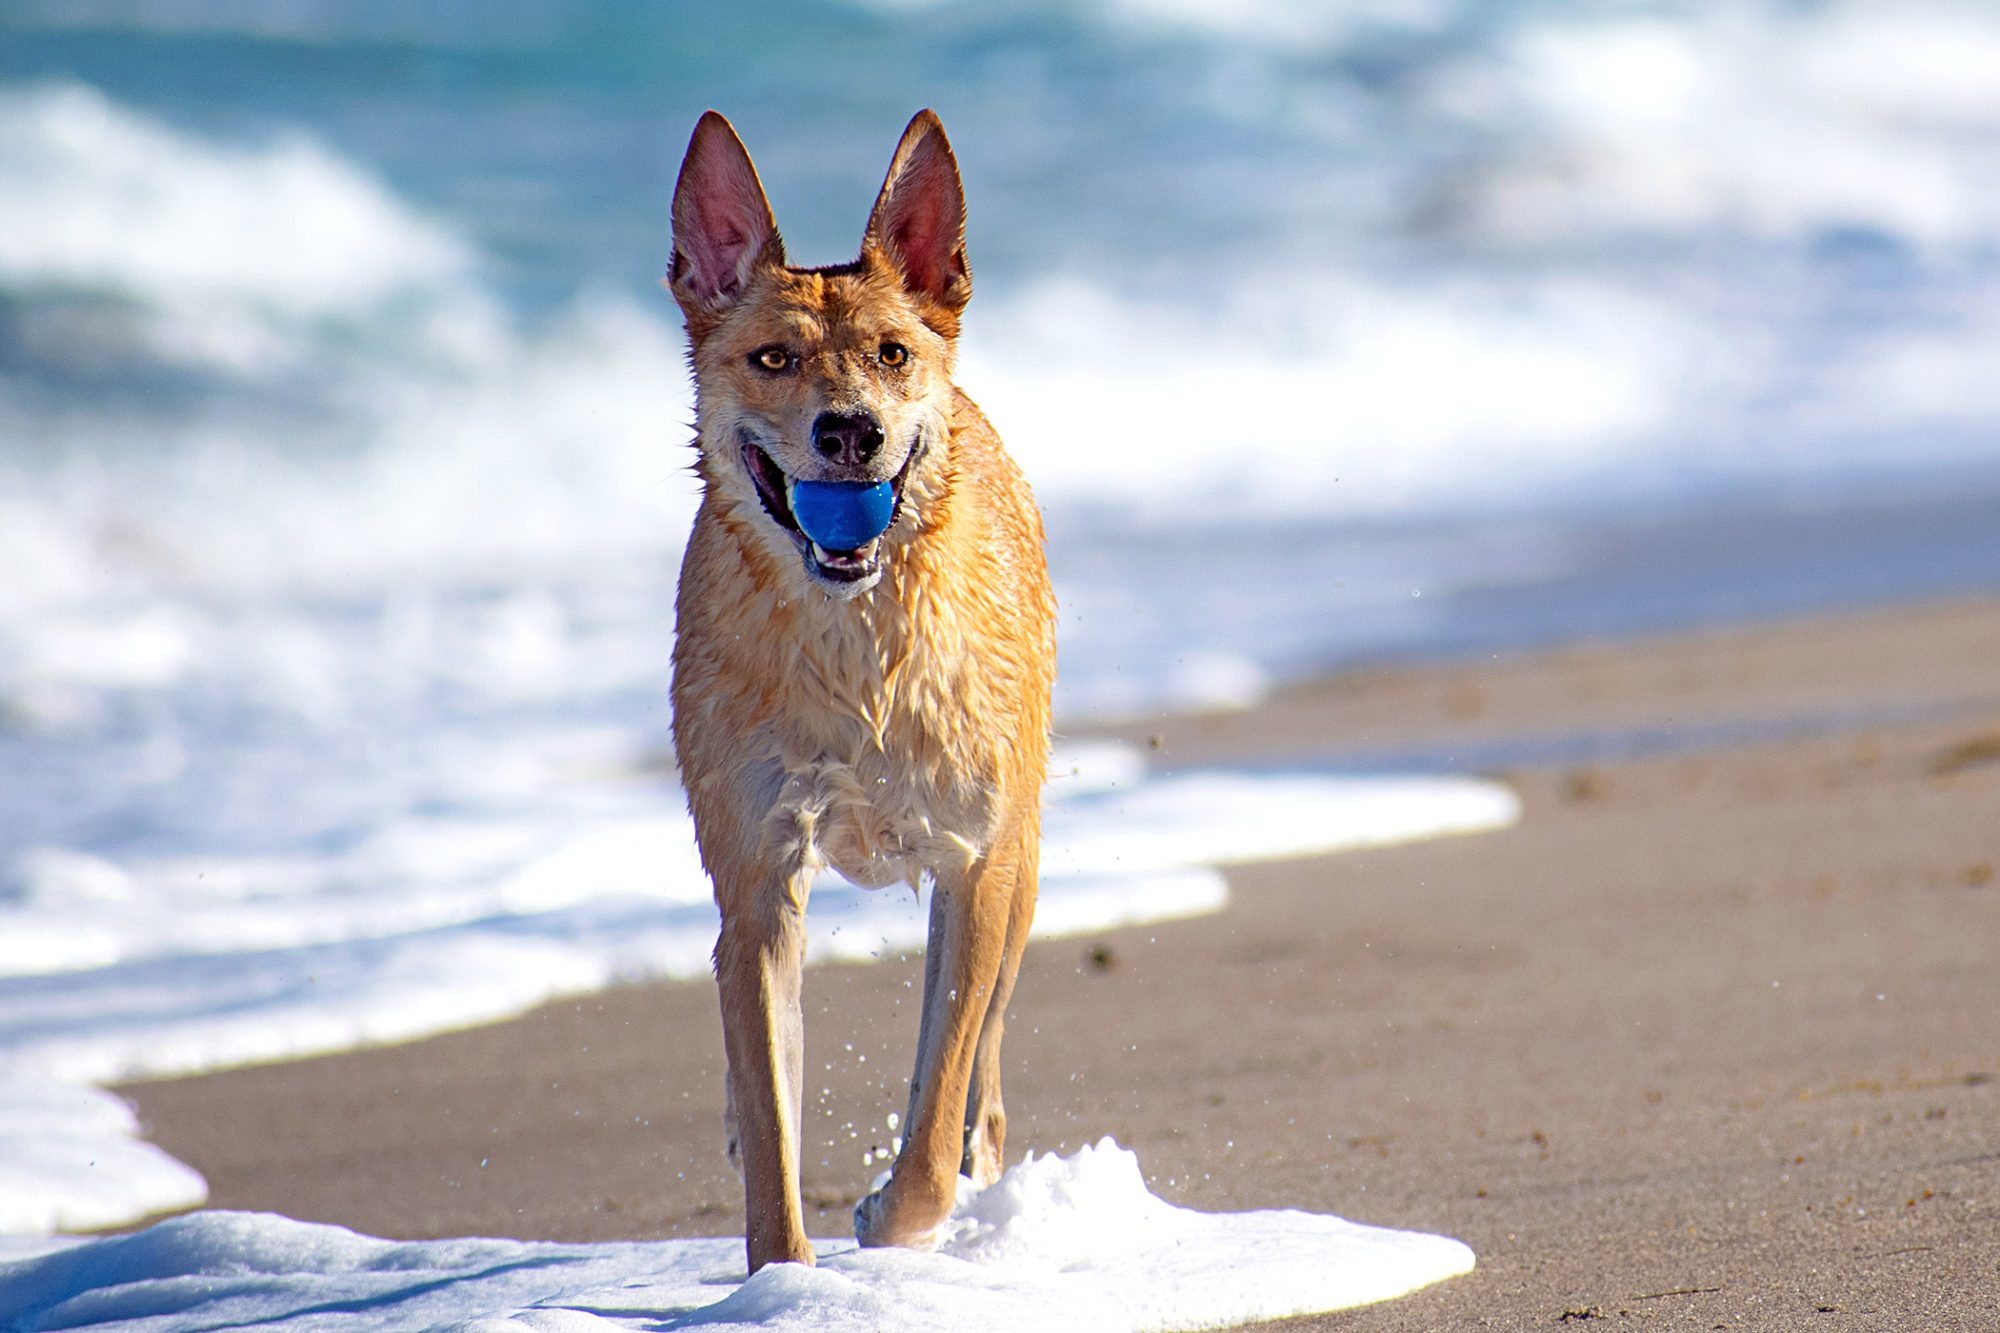 carolina dog walking on beach carrying a blue ball in its mouth